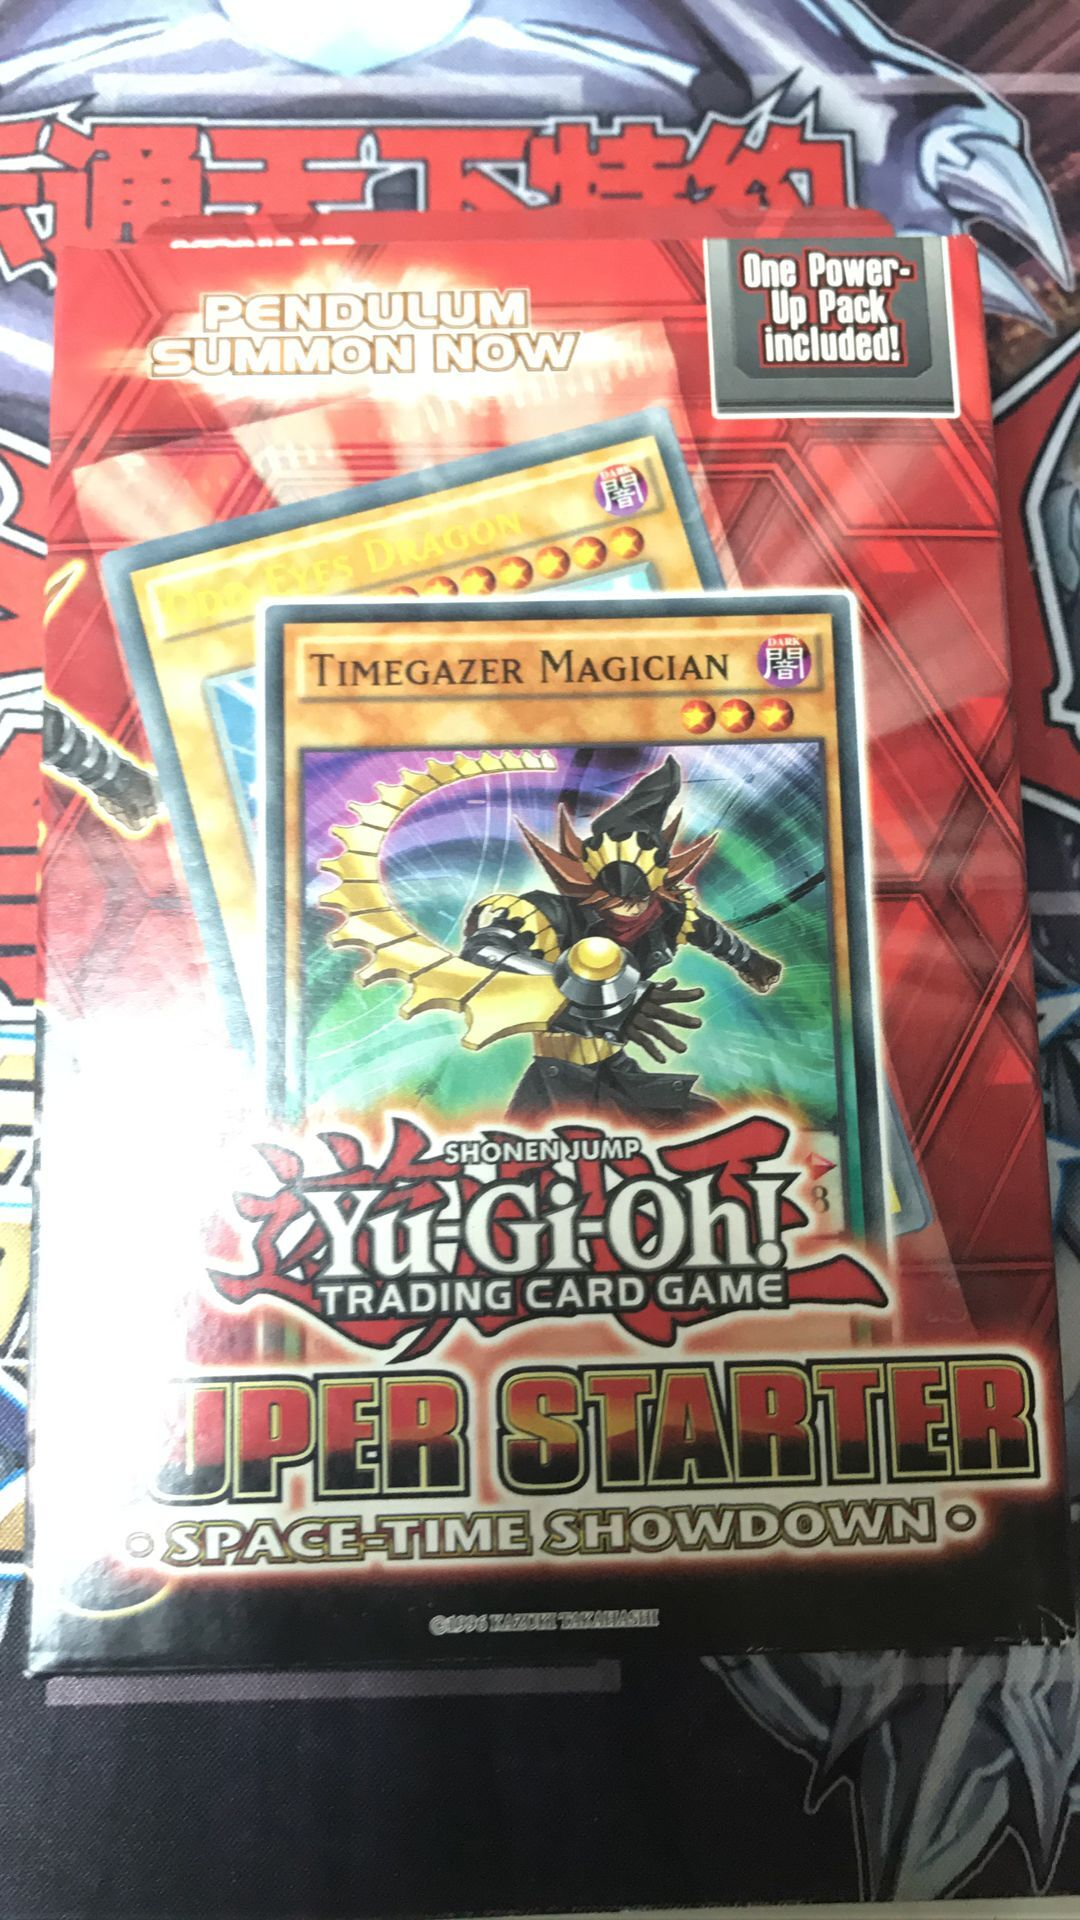 Yugioh 2014 Trading Card Game Super Starter Deck SPACE-TIME SHOWDOWN image